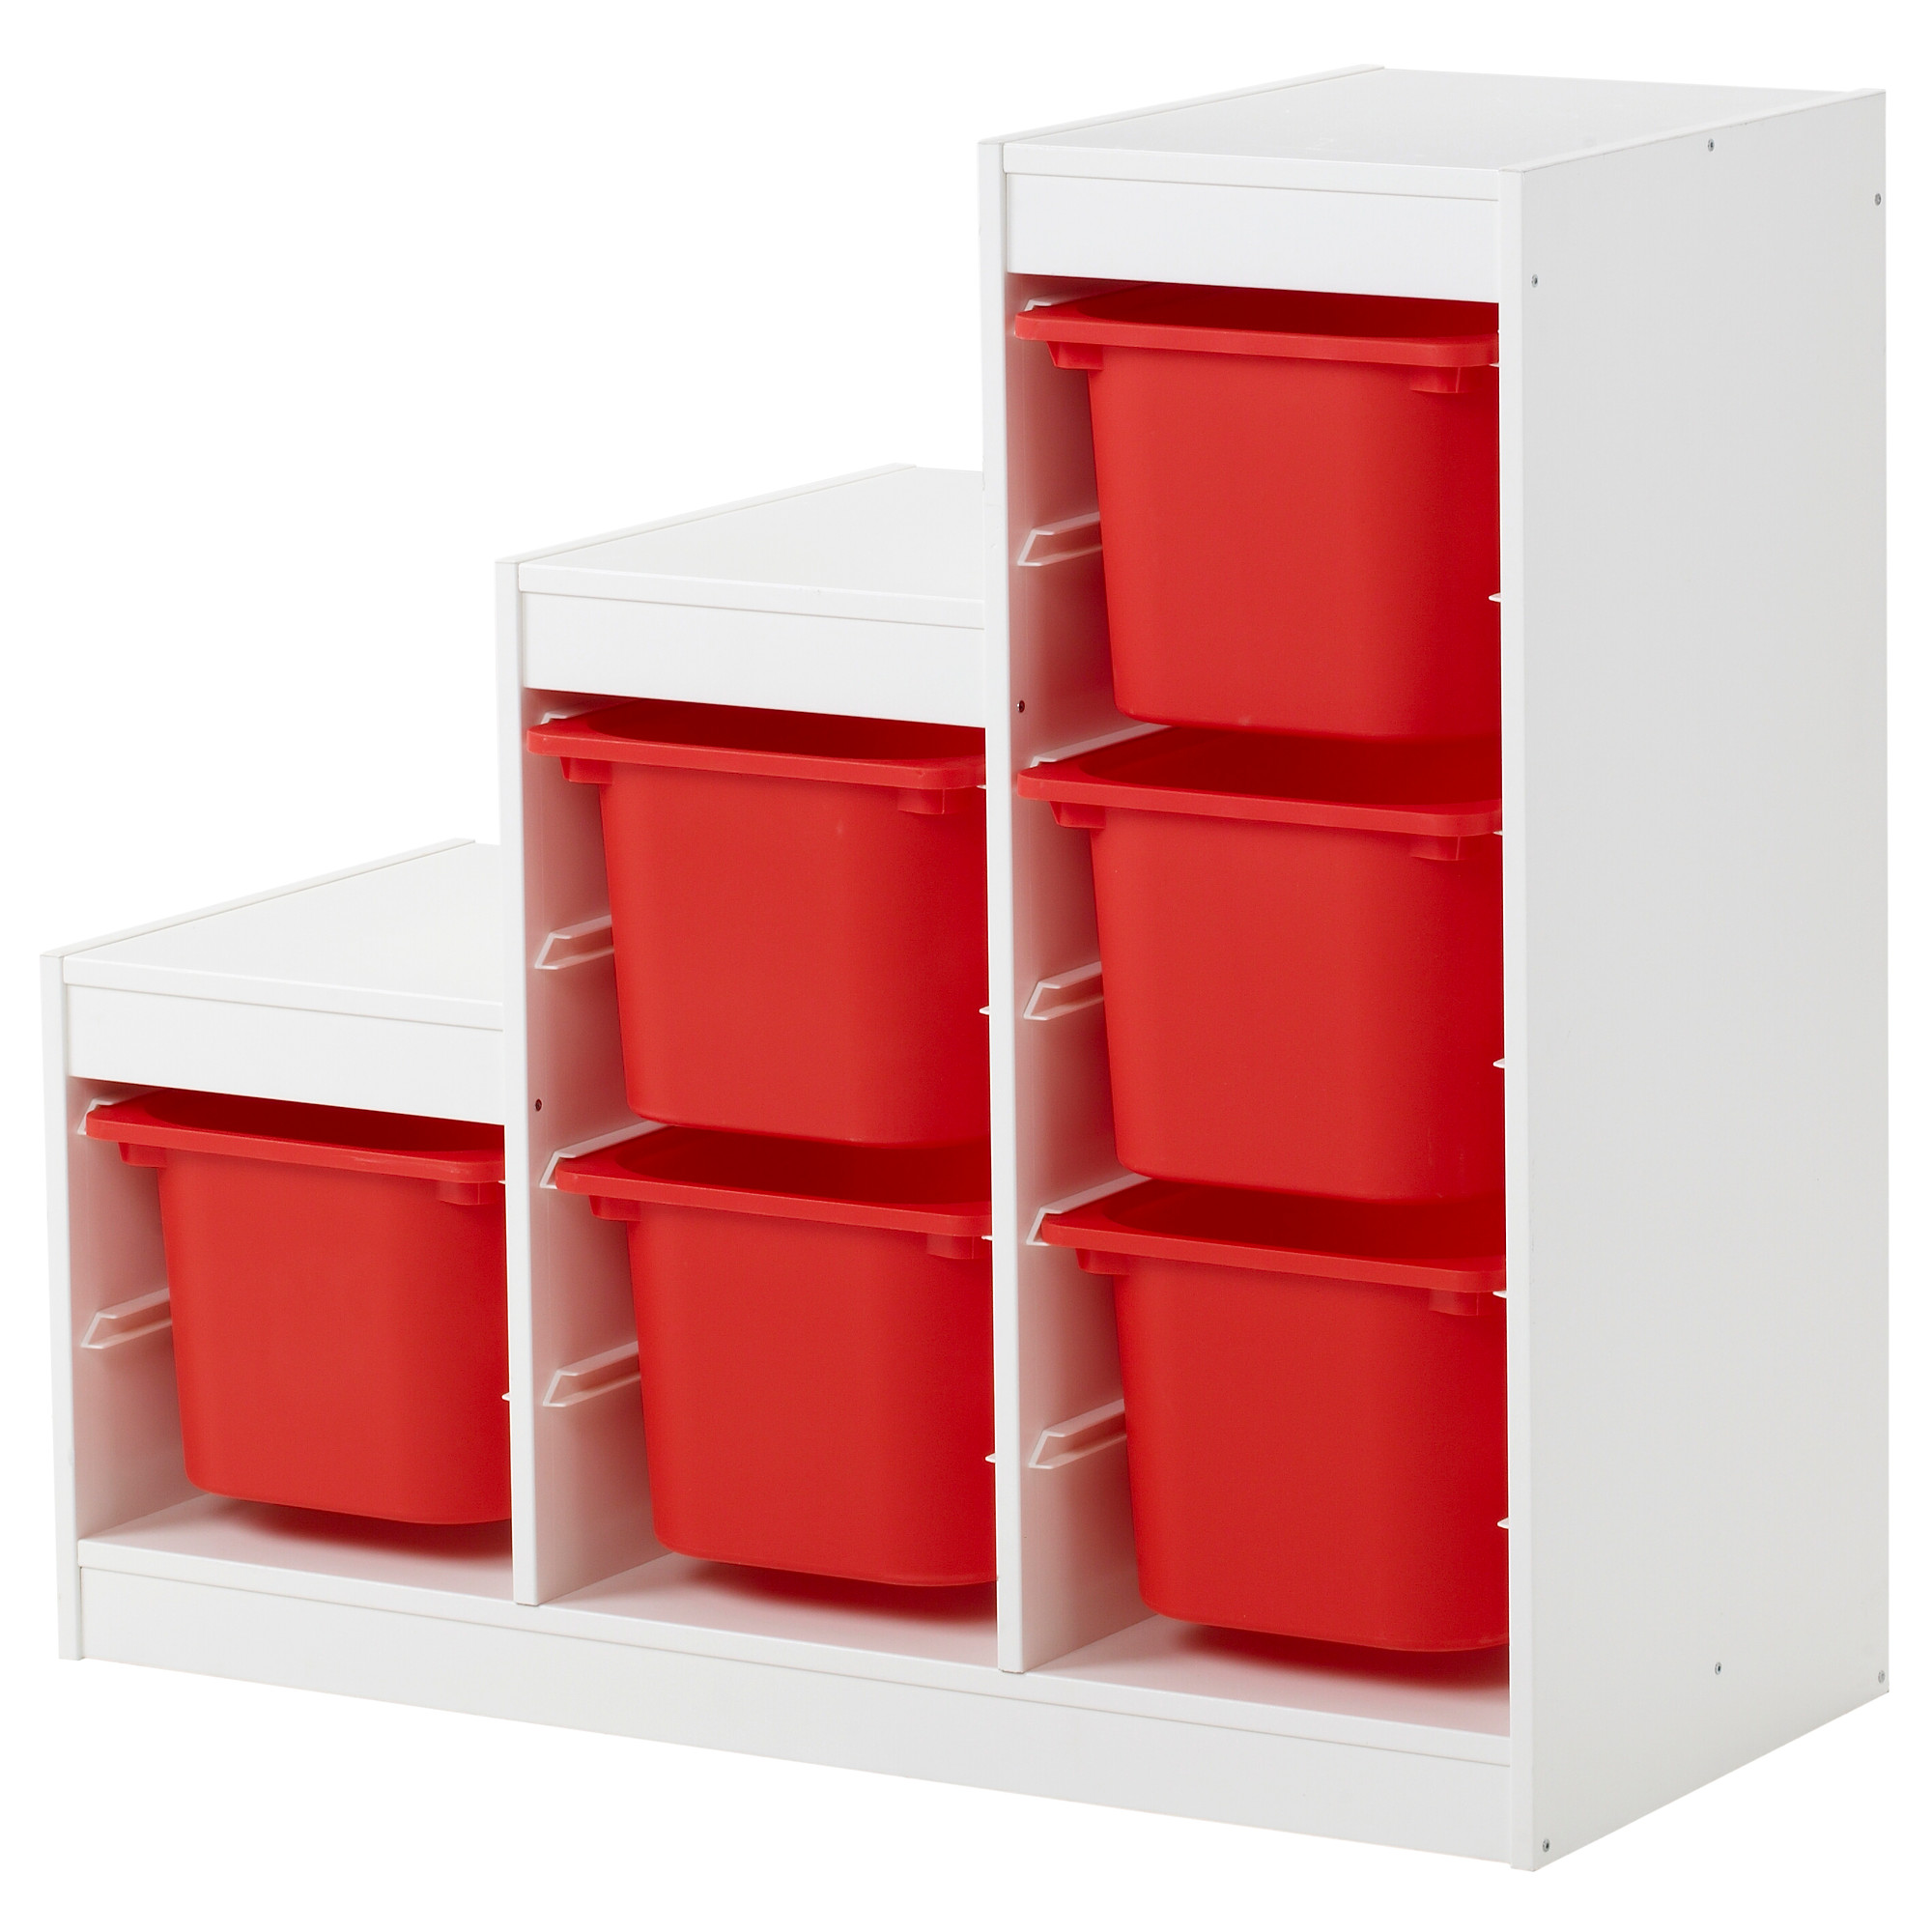 red and white nuance of ikea toy storage for inspiring furniture ideas